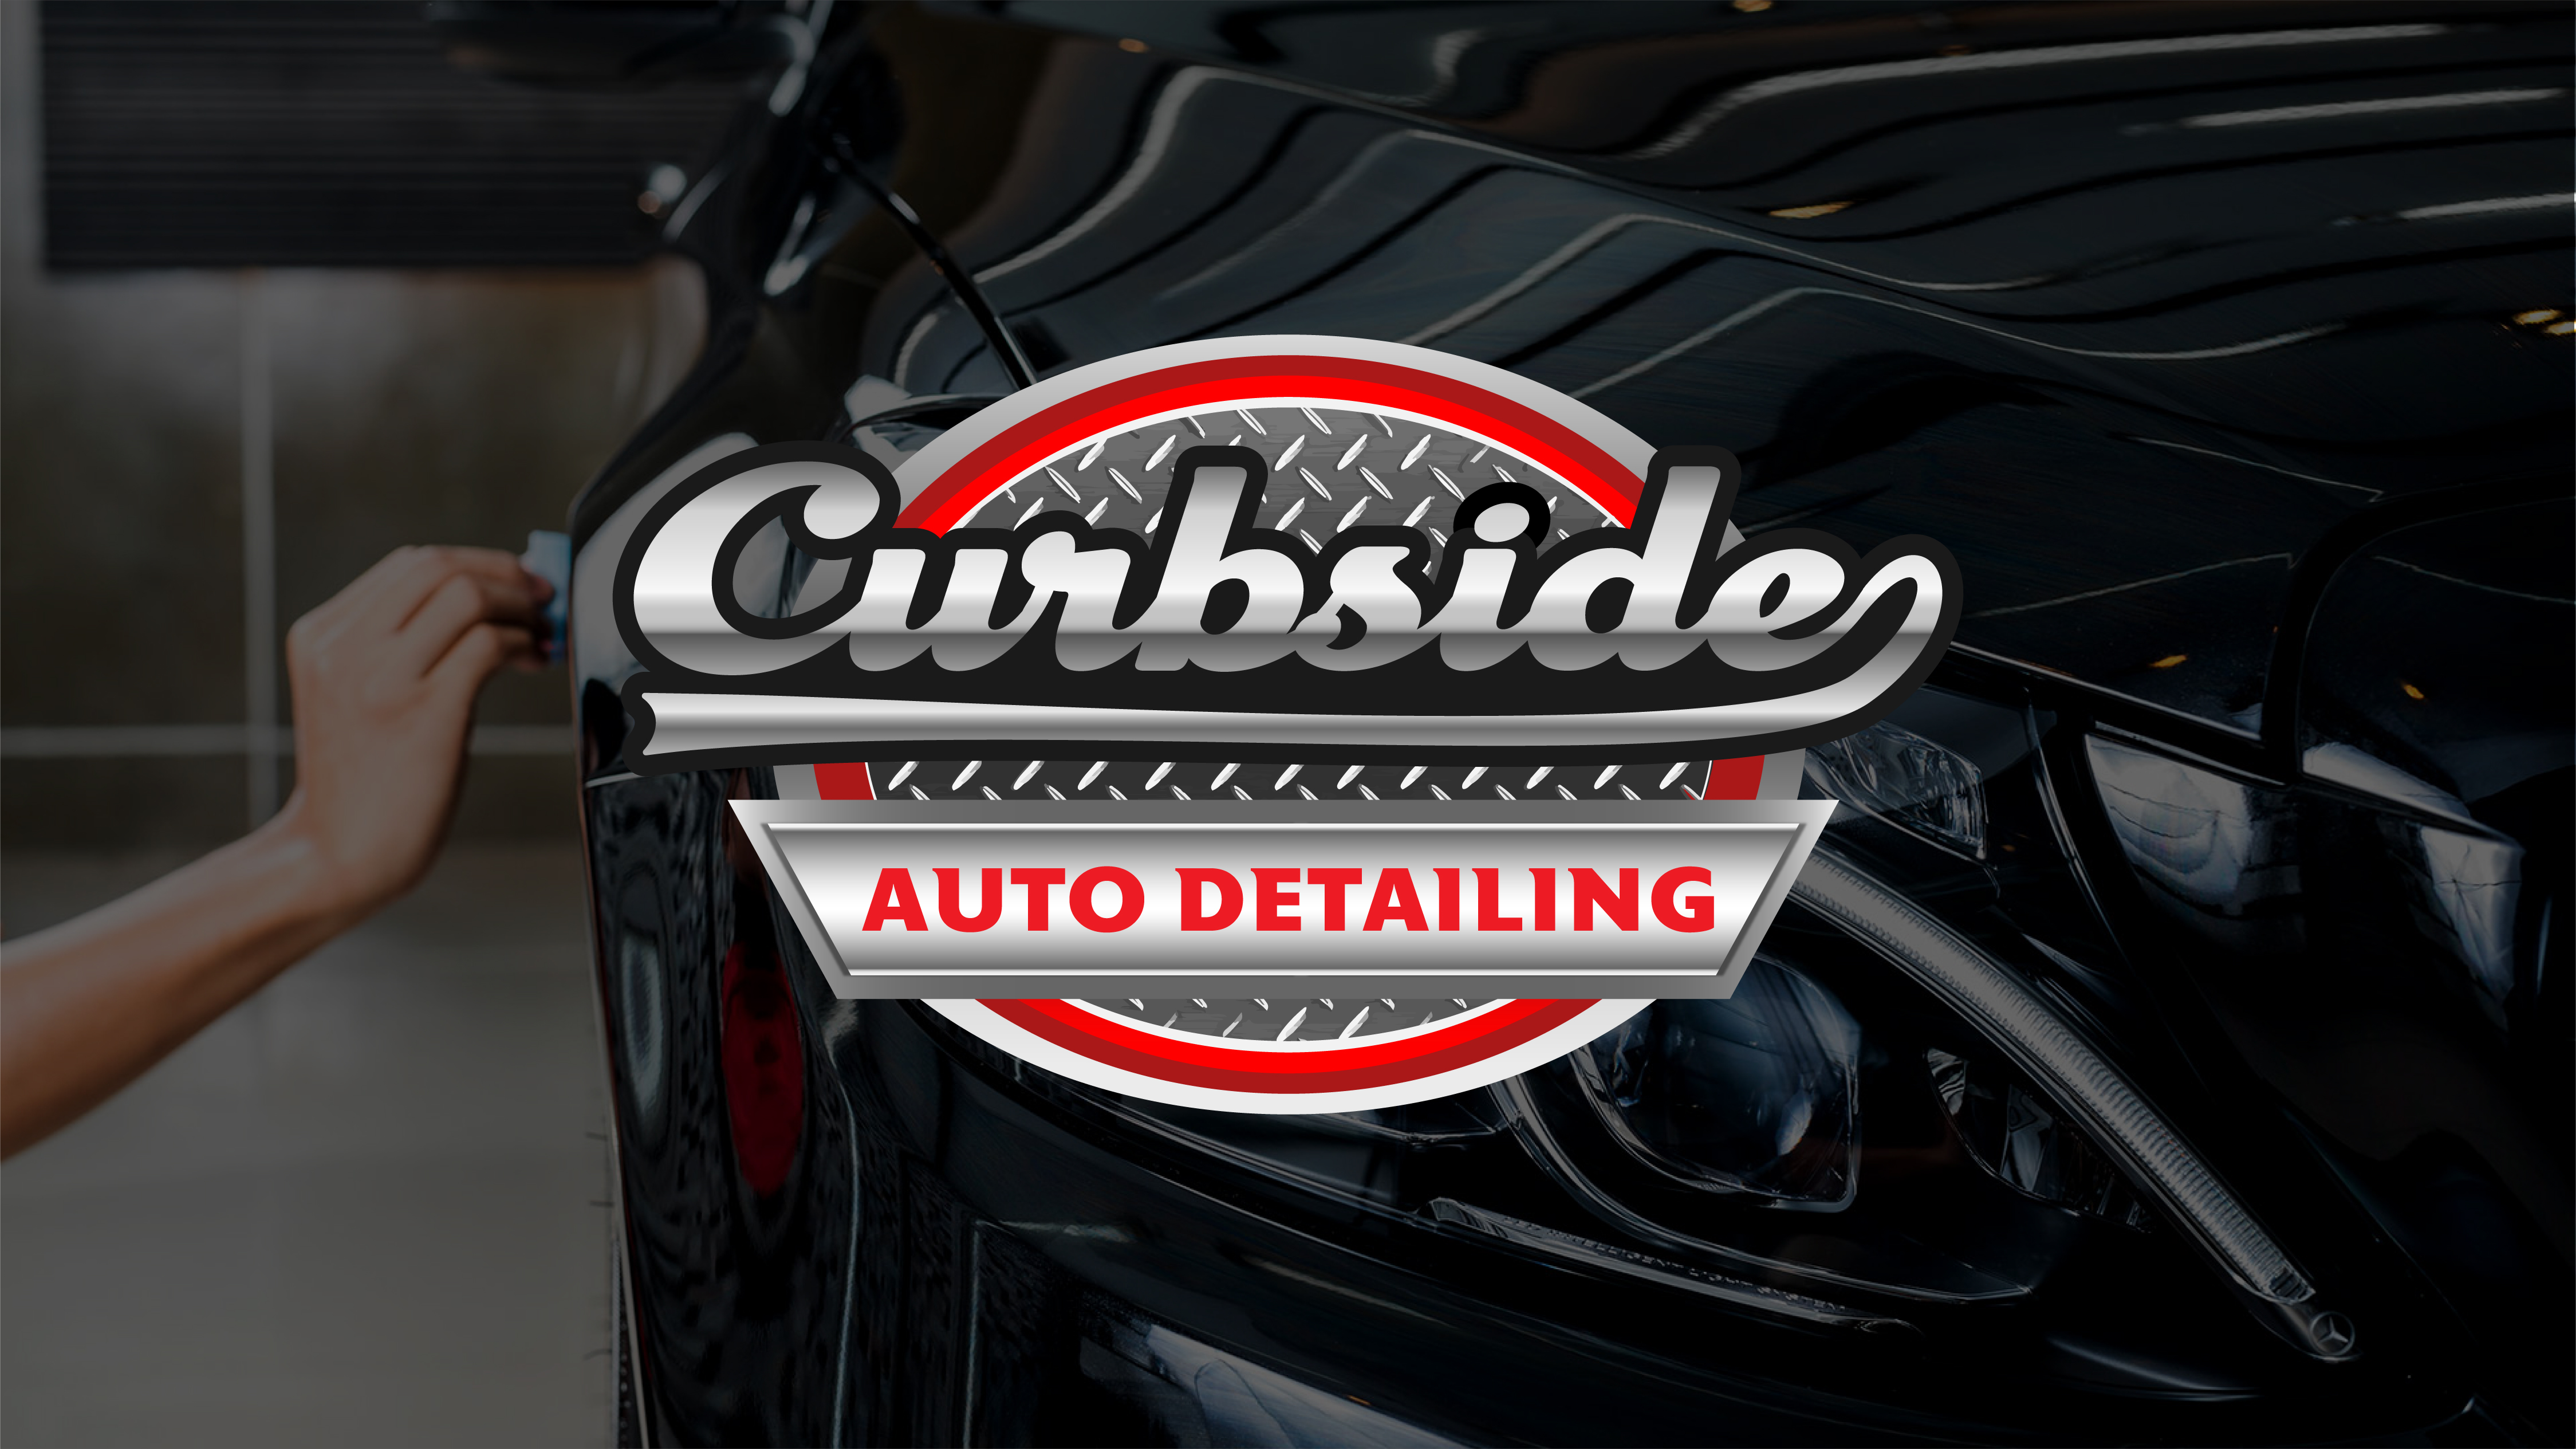 Curbside Auto Detailing logo.